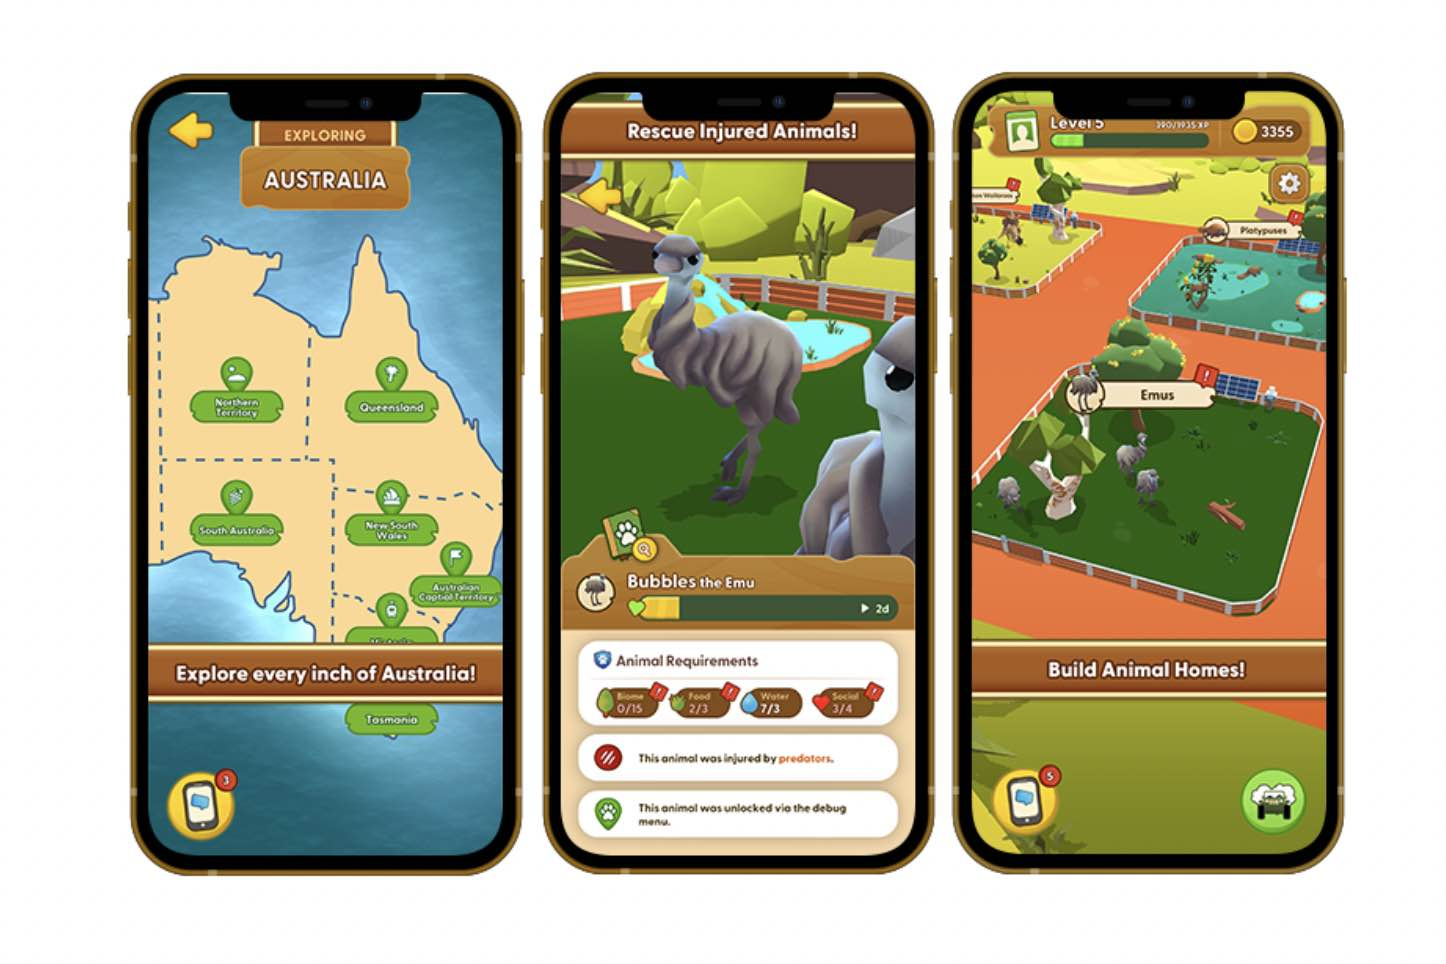 KangaZoo by Chaos Theory Games and Pentaquest